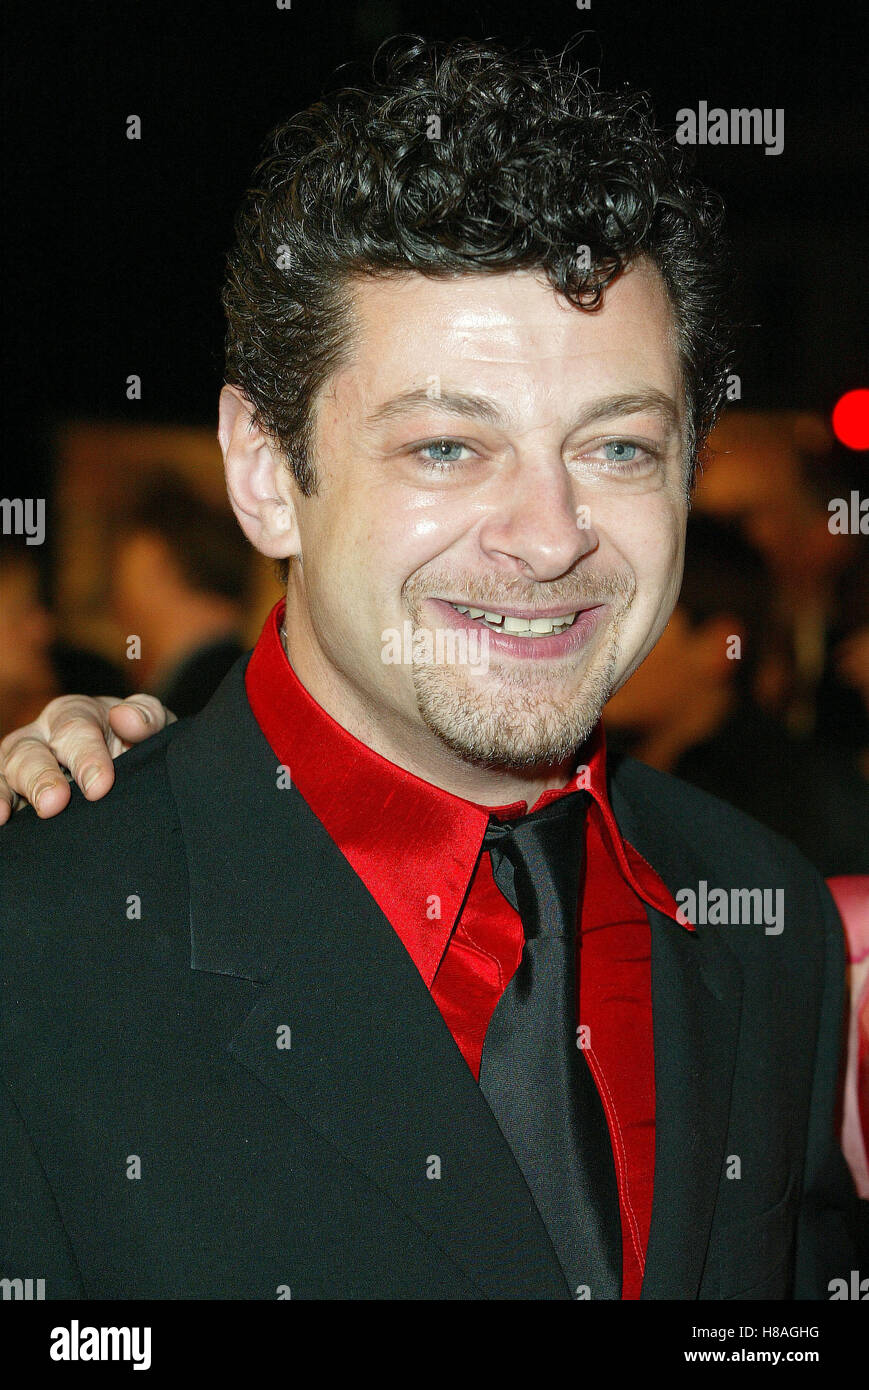 ANDY SERKIS LORD OF THE RINGS: THE RETURN WESTWOOD LOS ANGELES USA 03 December 2003 - Stock Image